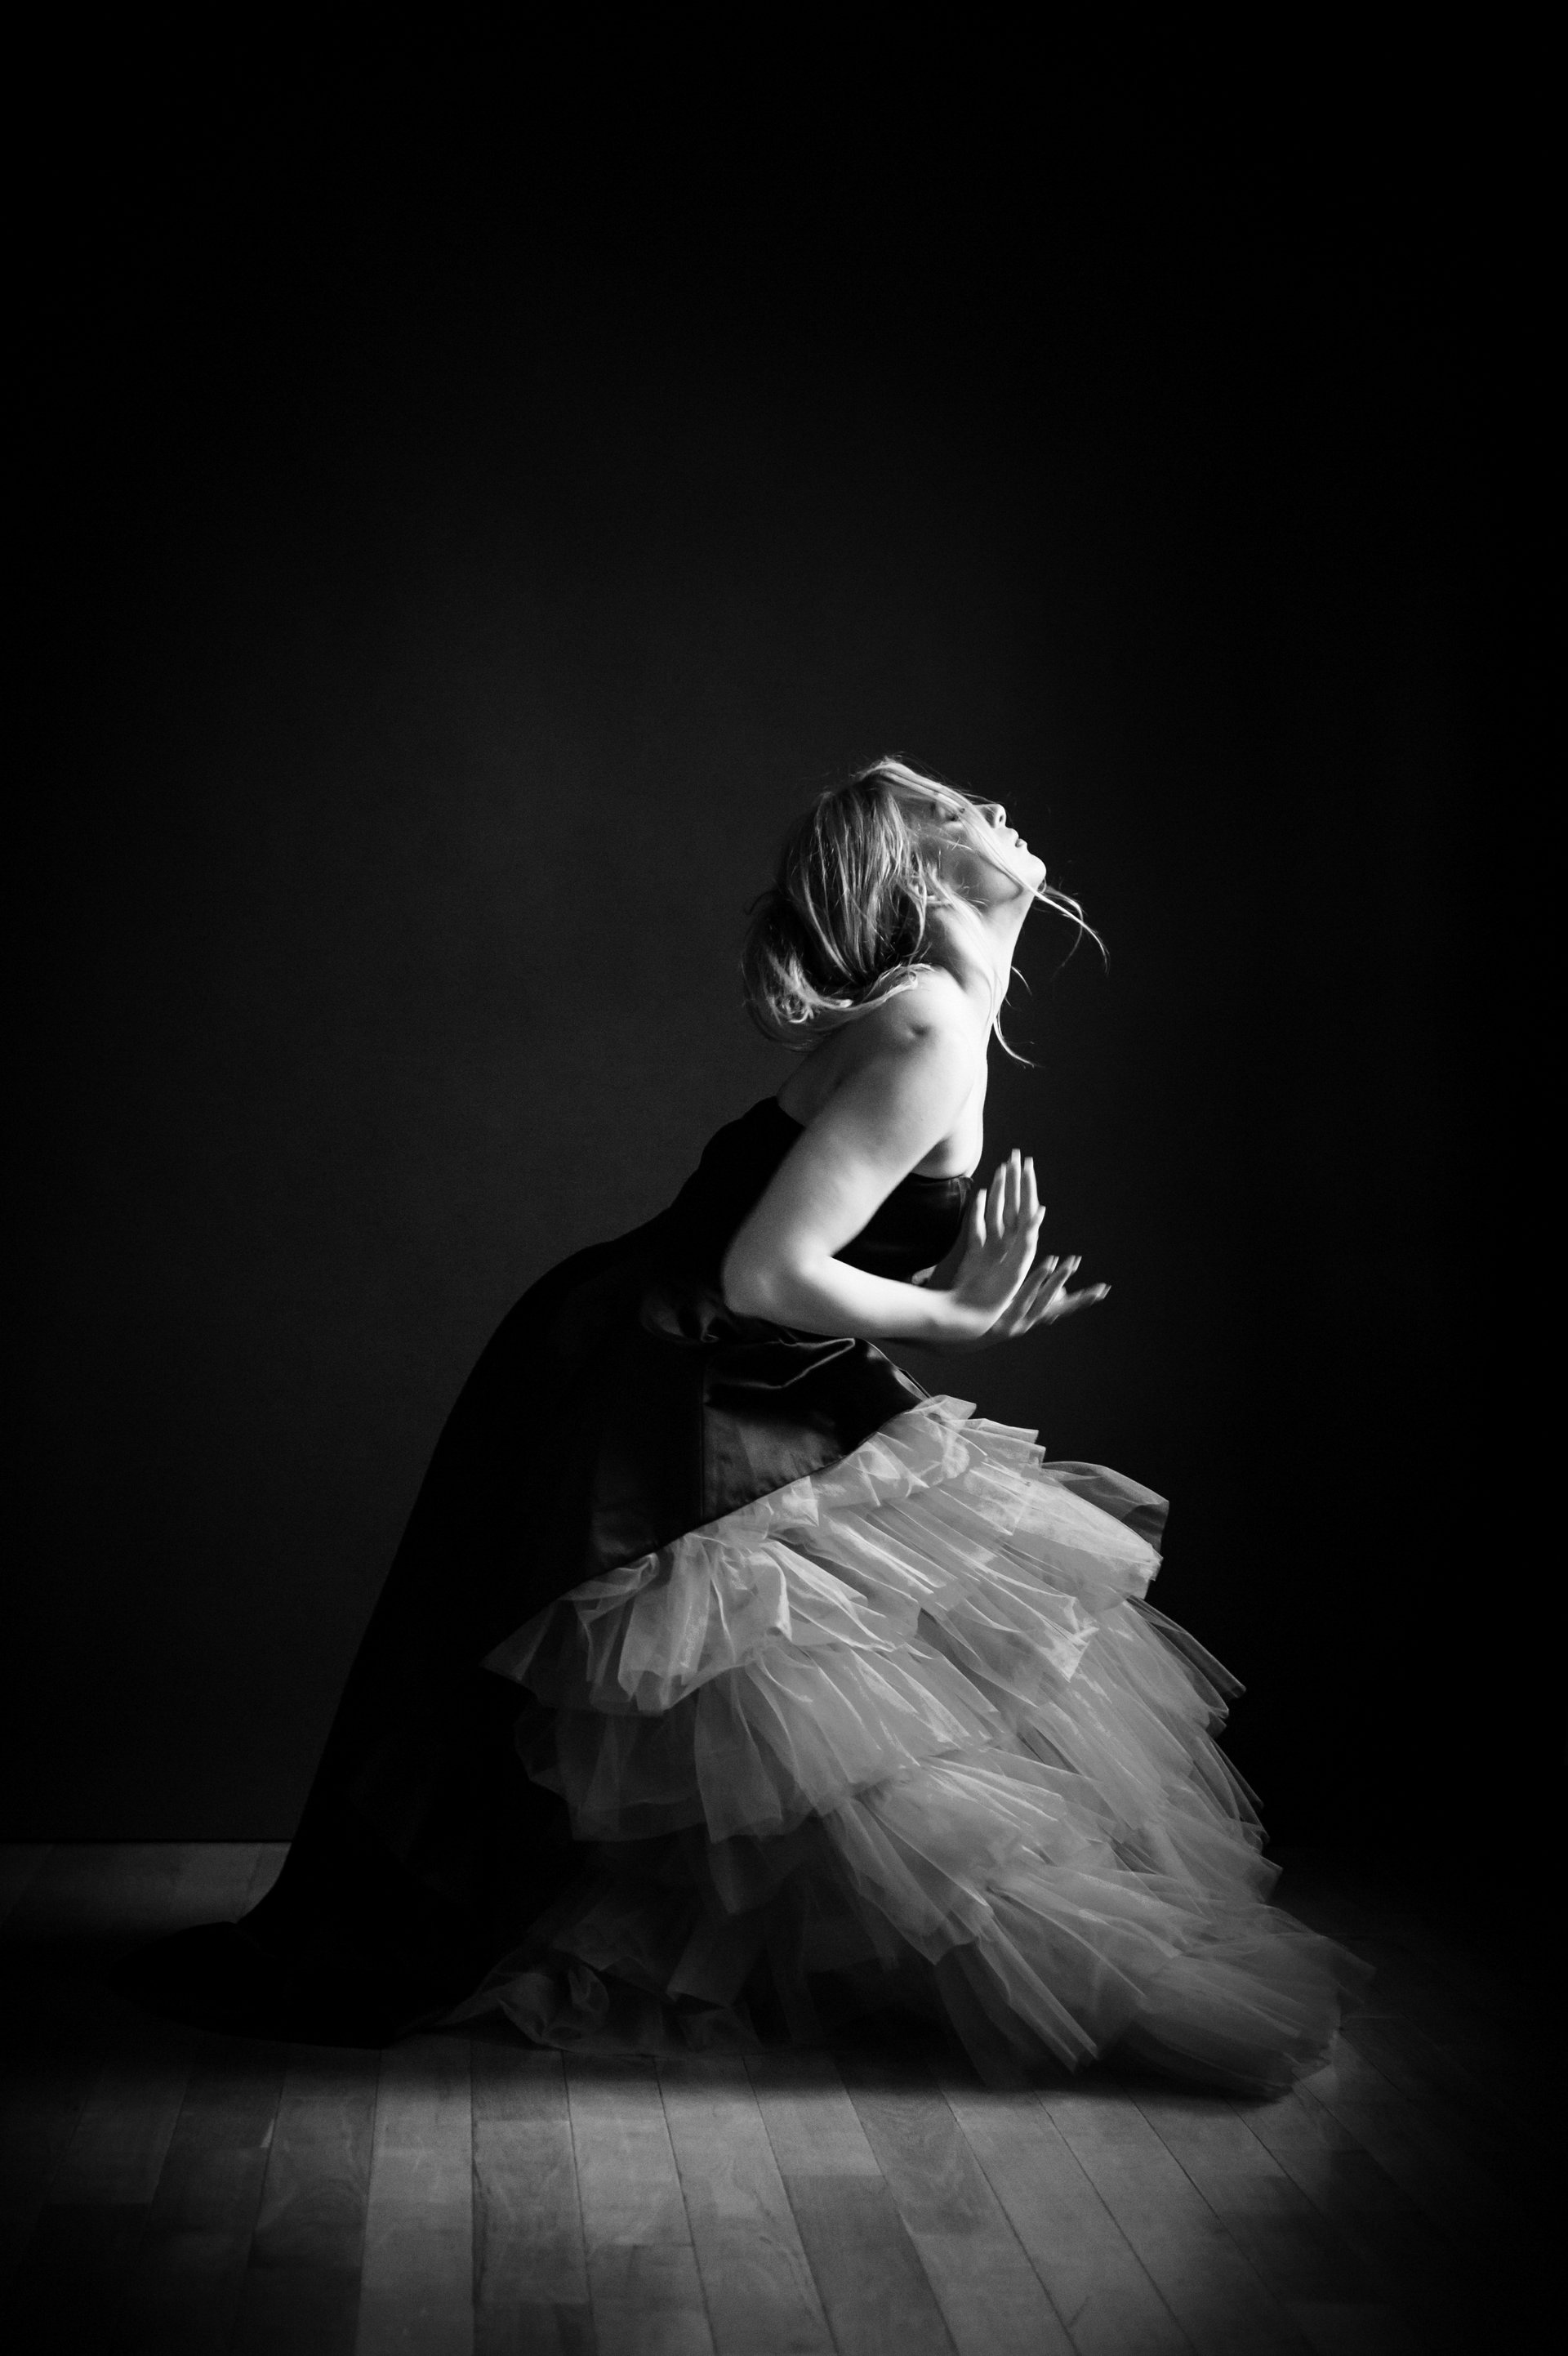 nEO_IMG_Xing Photography Soul of Dance - Haley-138-BW.jpg